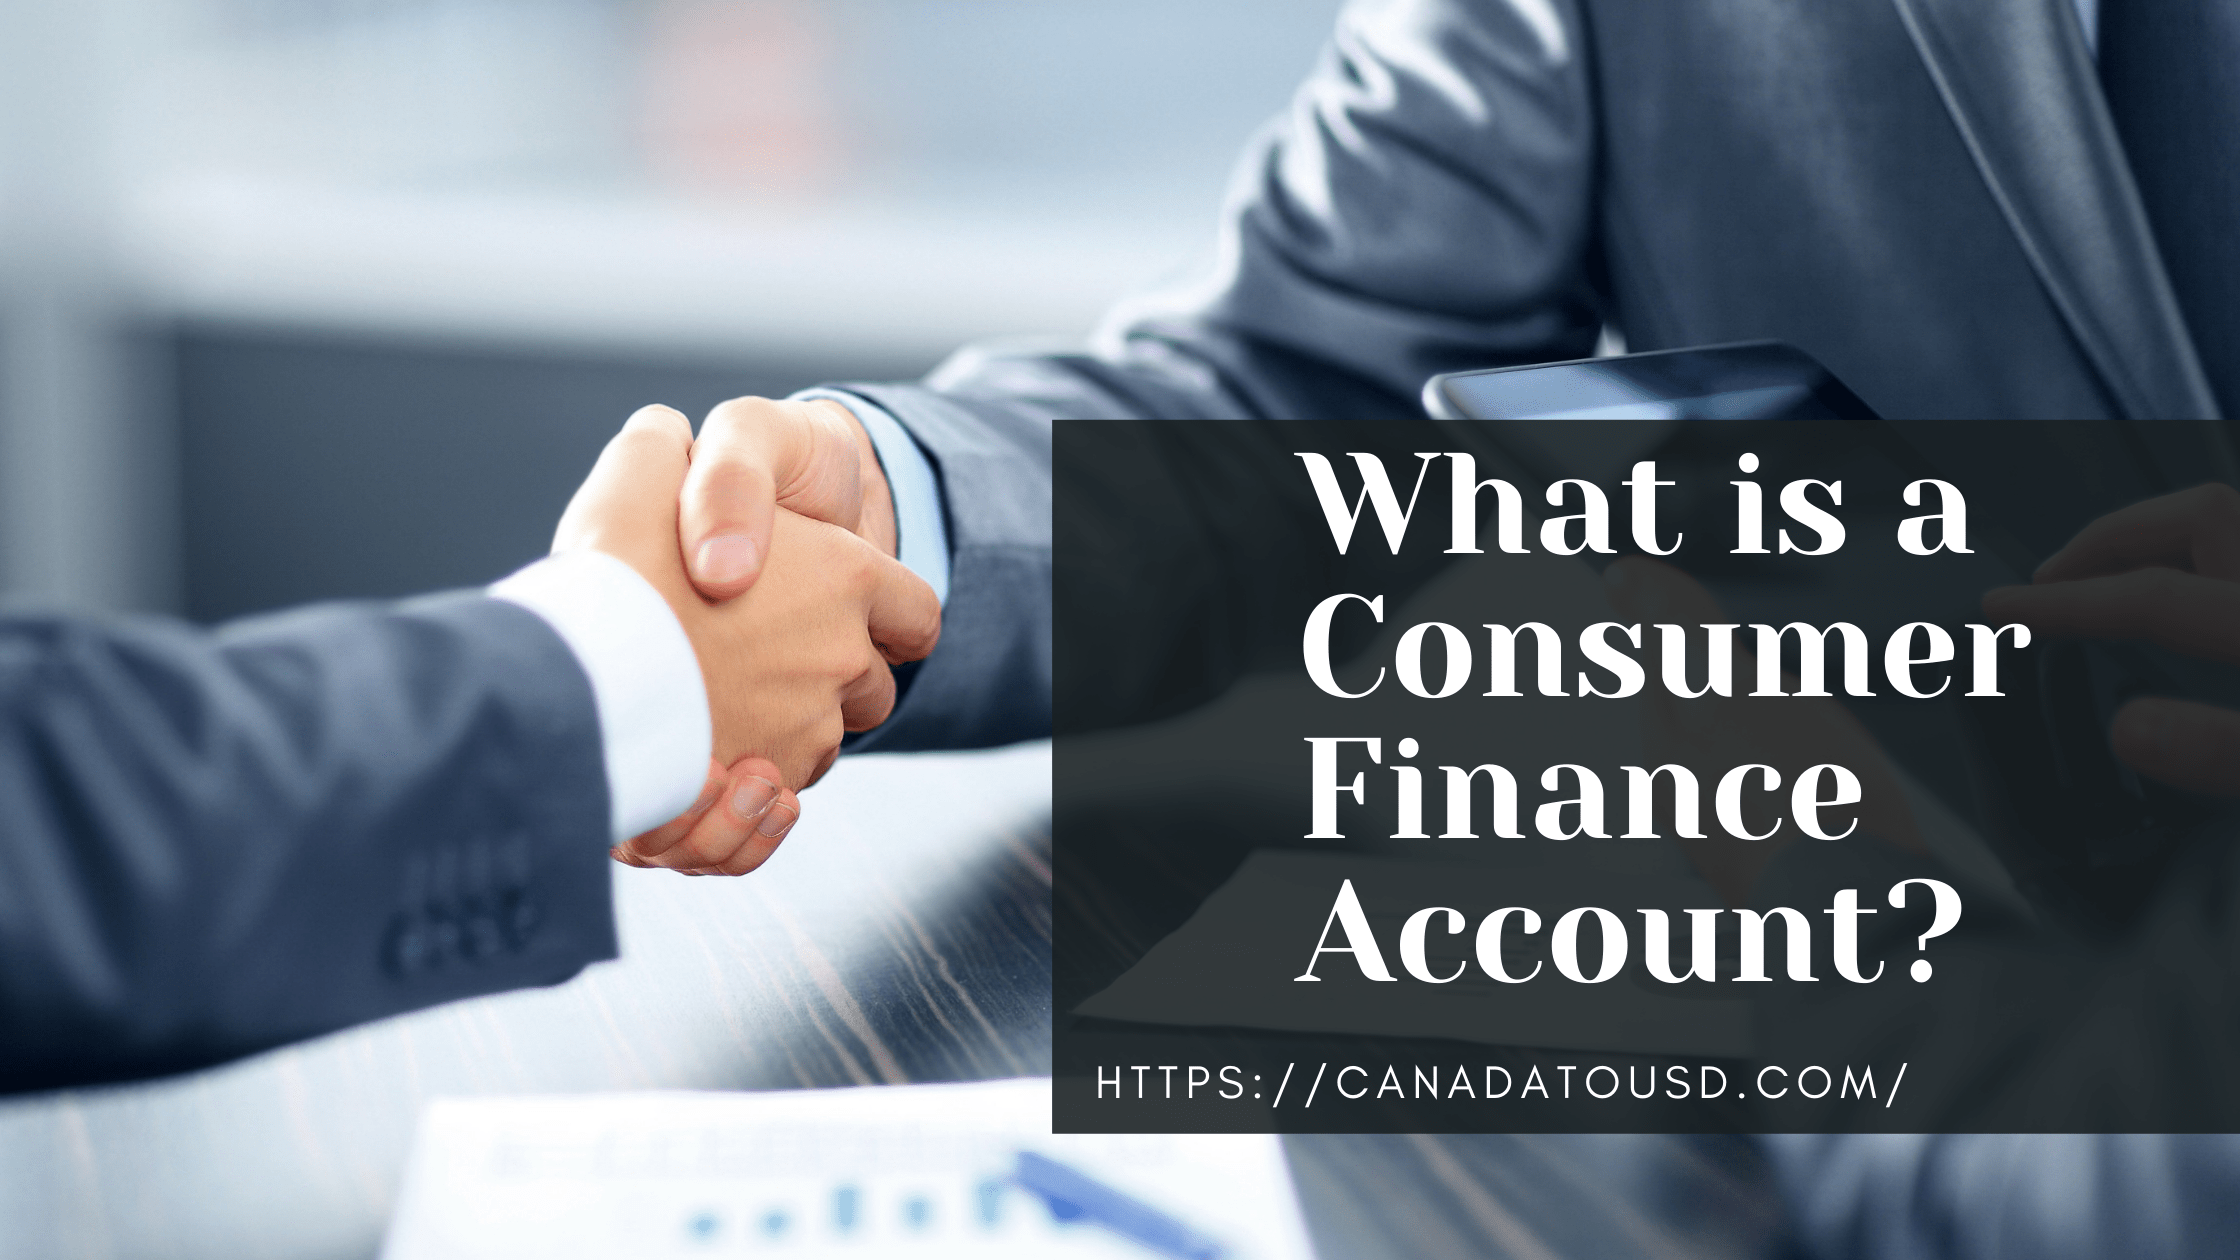 What is a Consumer Finance Account